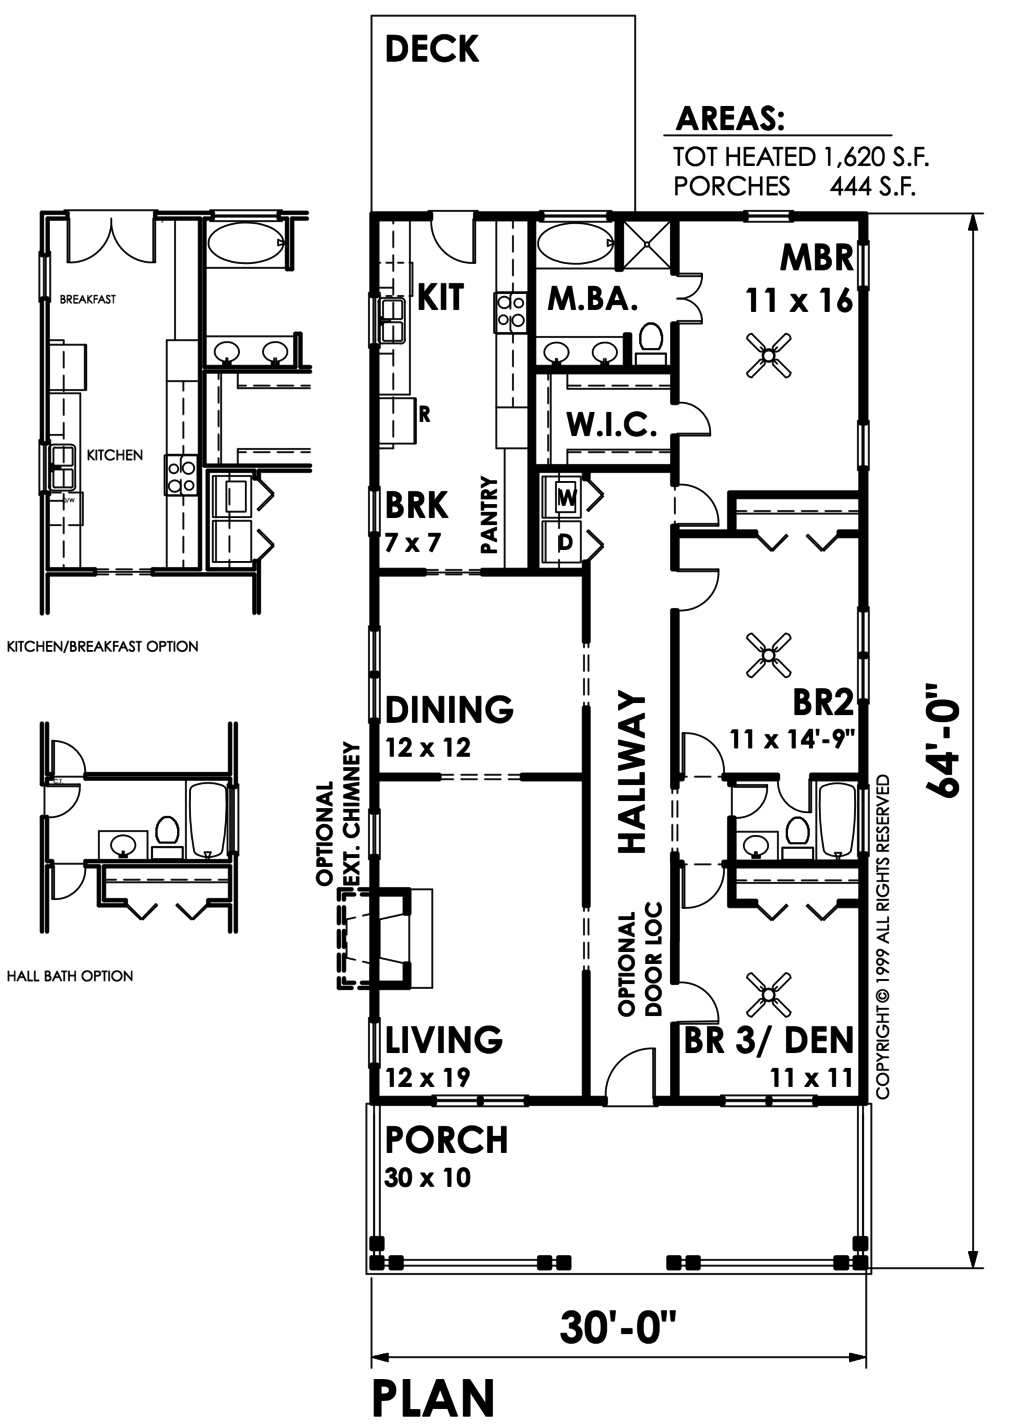 Bungalow Style House Plan 3 Beds 2 Baths 1620 Sq Ft Plan 30 209 Bungalow Style House Plans Cottage Style House Plans House Plans